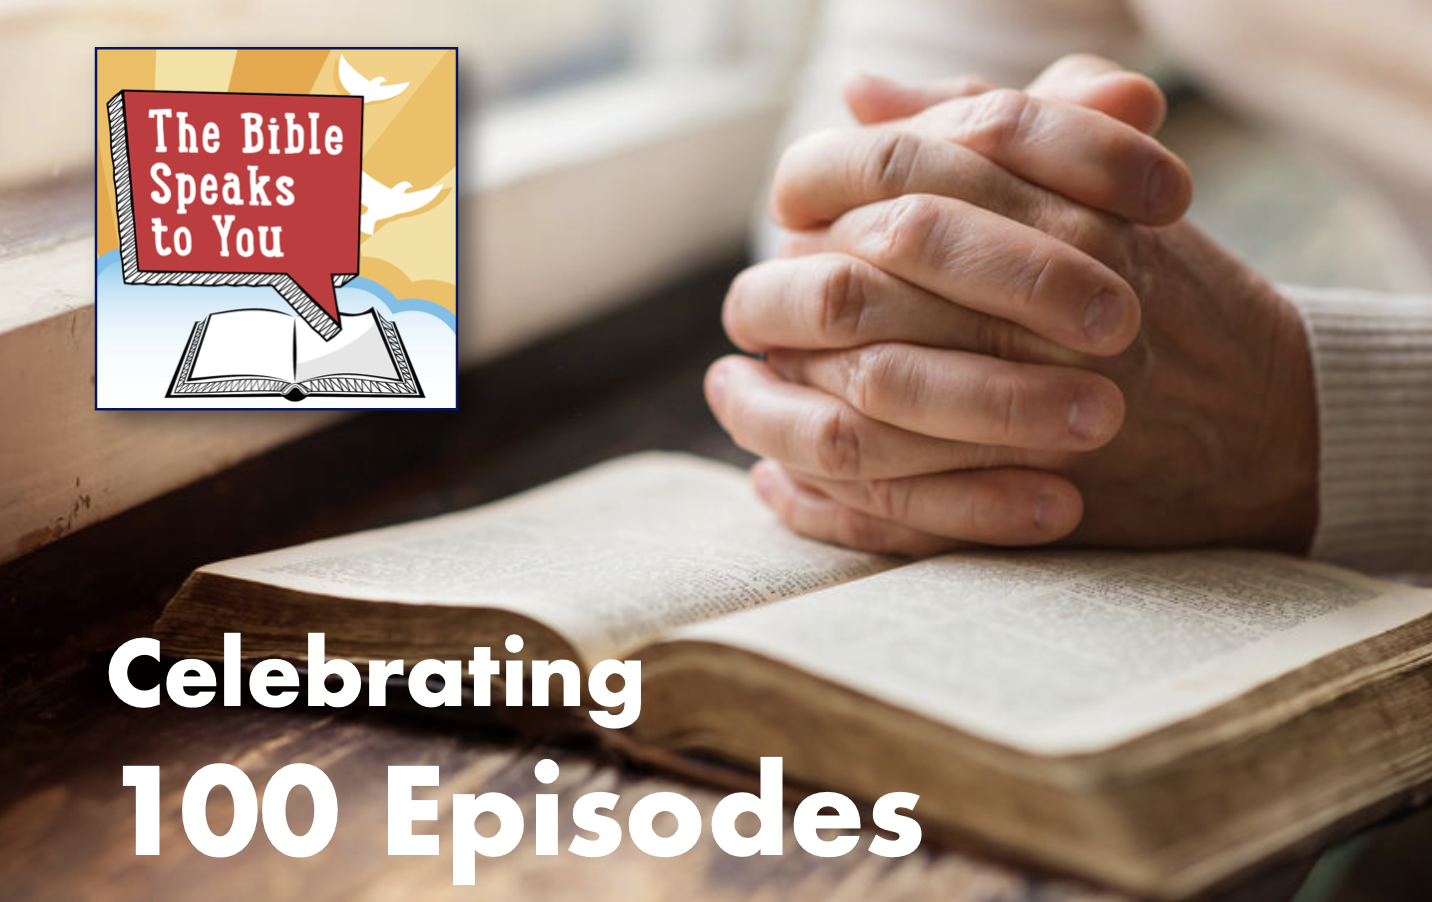 The Bible Speaks to You Podcast celebrating 100 episodes